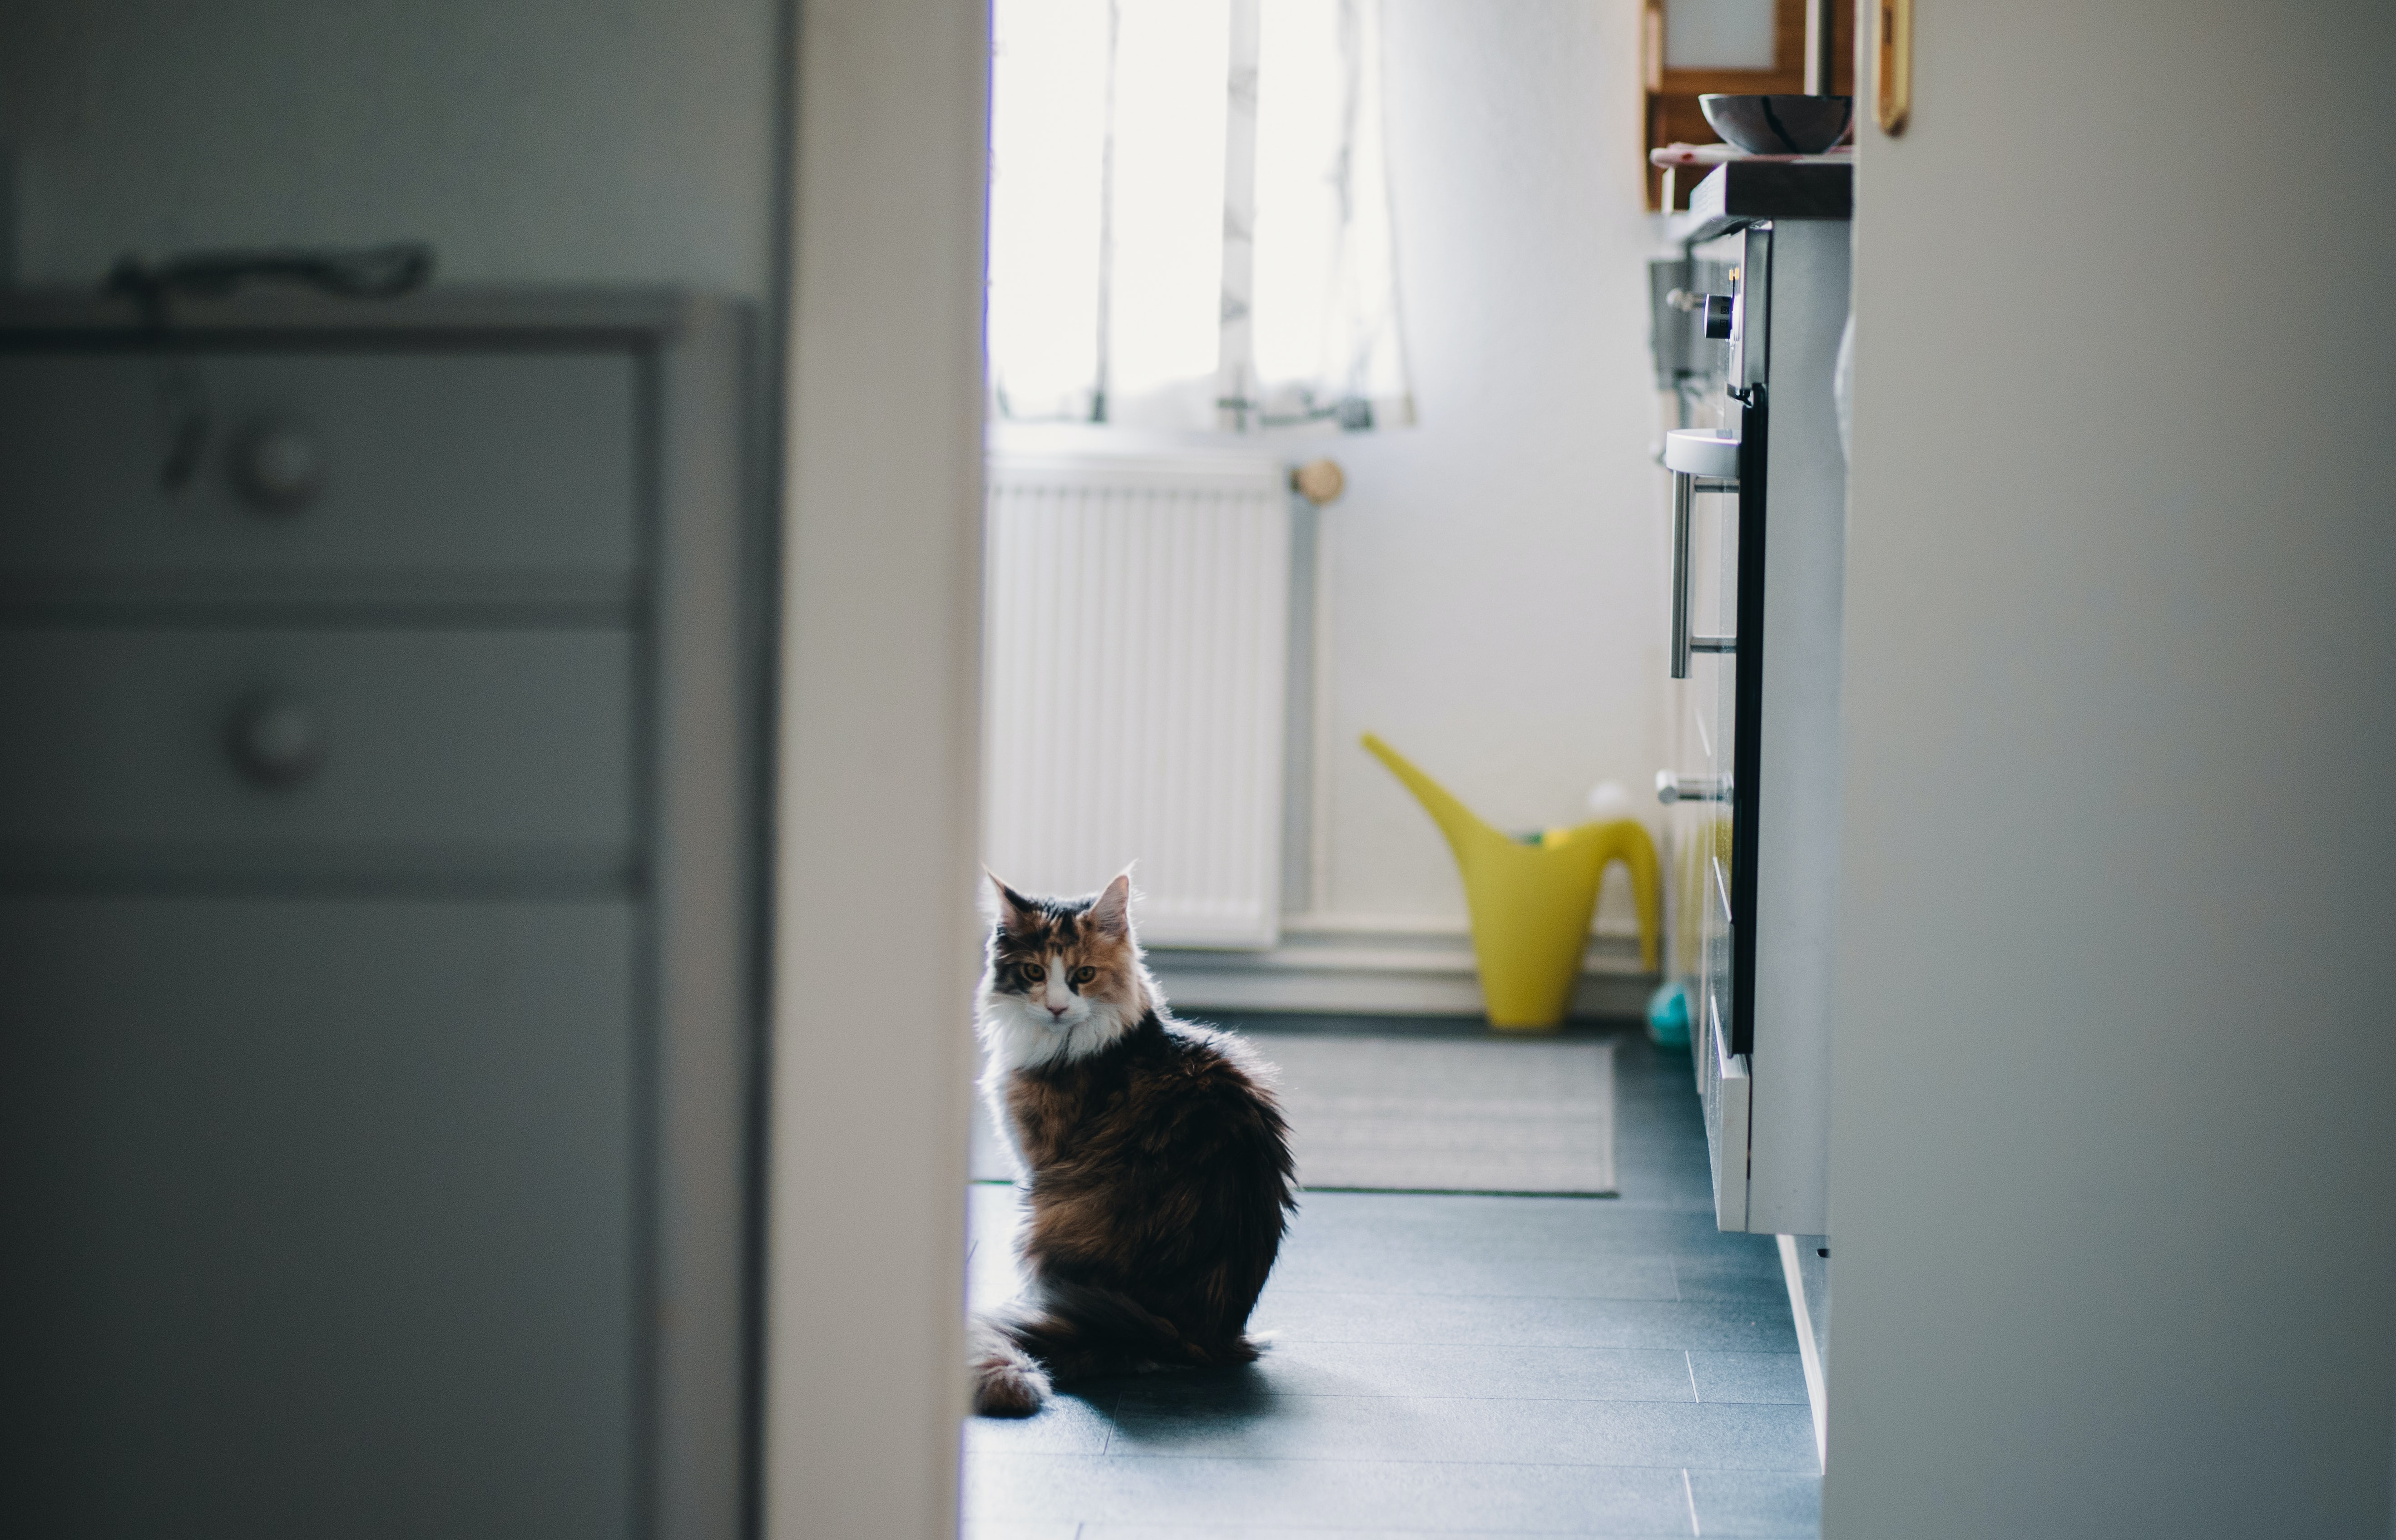 Cat through doorway in Berlin home kitchen with yellow watering can in background